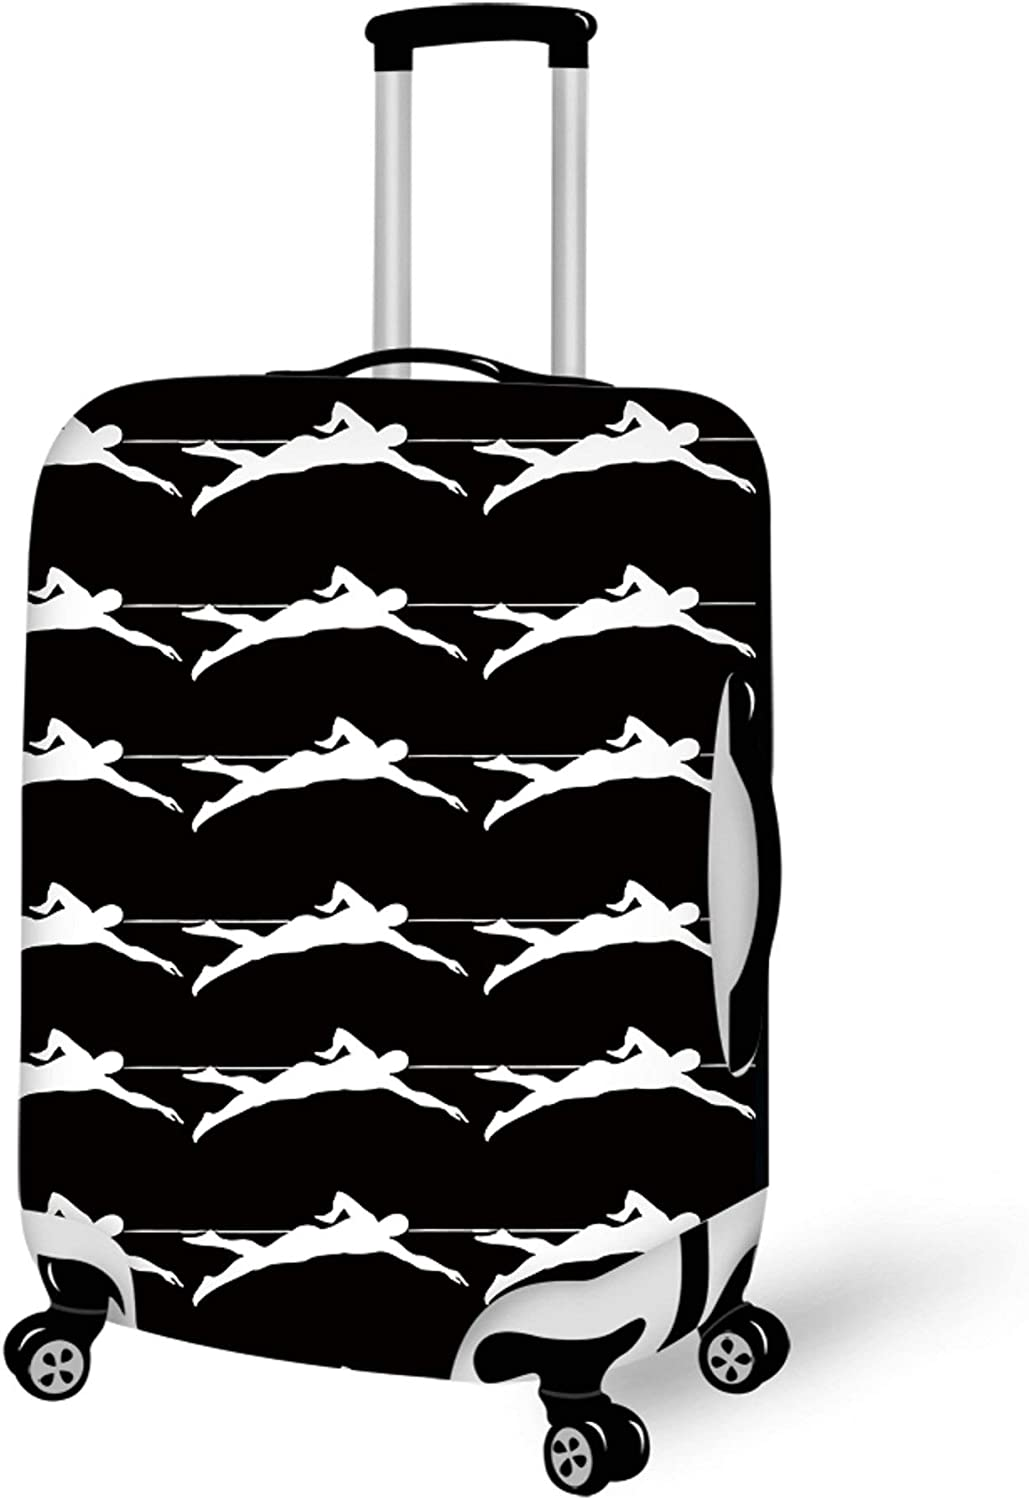 Travel Luggage Cover Suitcase Protector Fits 22-24 inch Luggage Swimmer